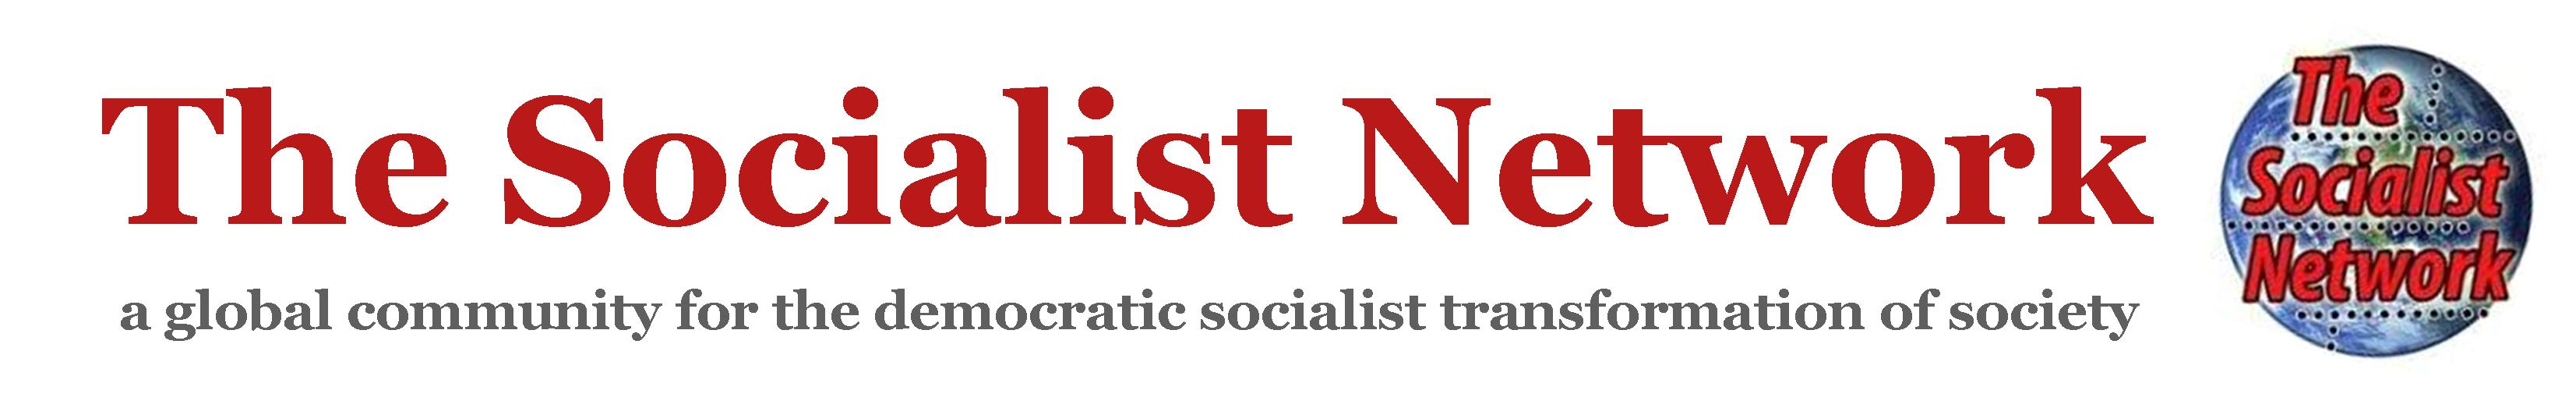 The Socialist Network